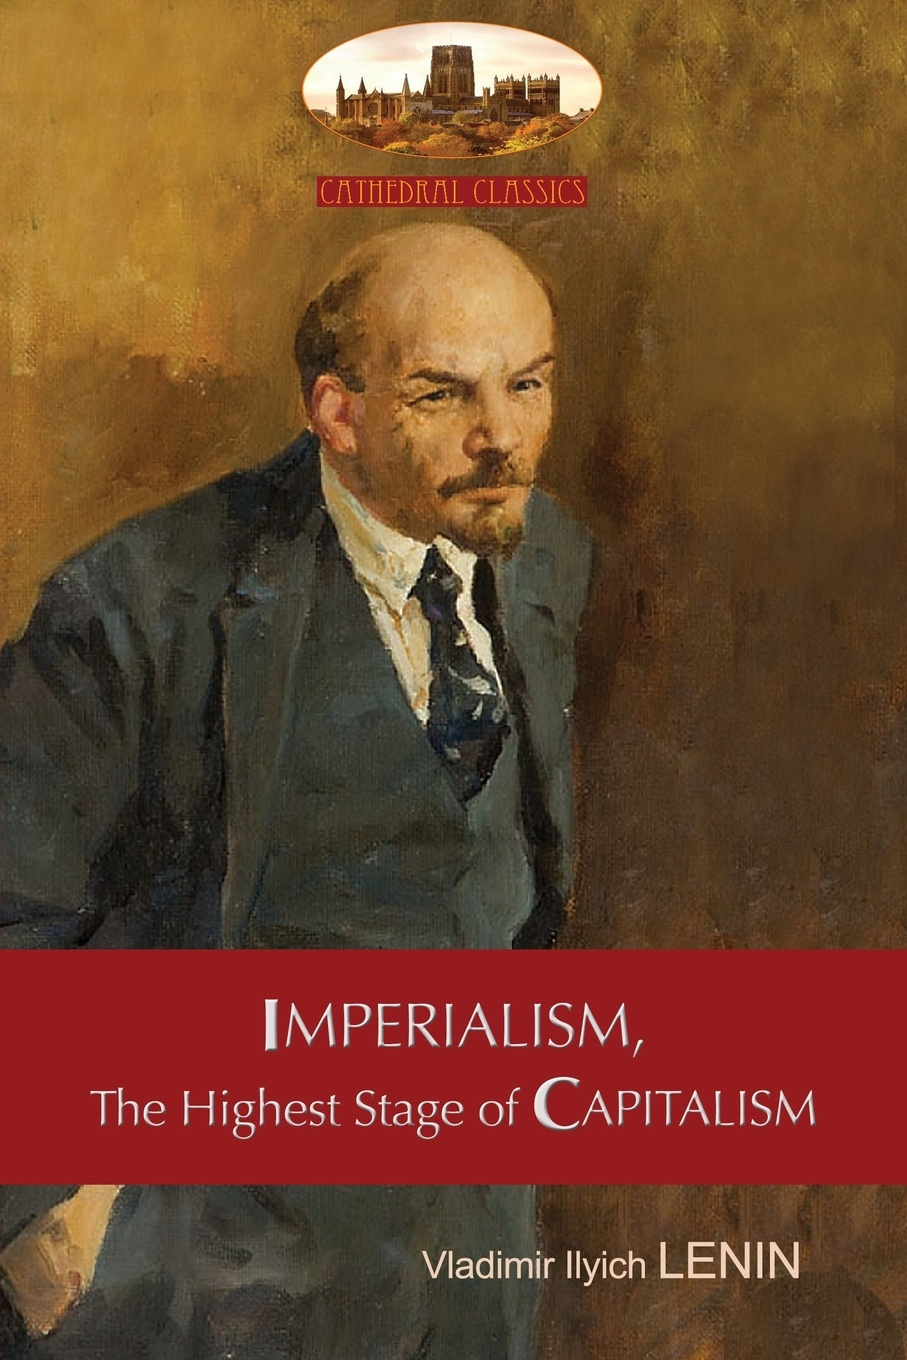 Vladimir Ilyich Lenin Imperialism, The Highest Stage of Capitalism - A Popular Outline. Unabridged with original tables and footnotes (Aziloth Books) capitalism and modernity the great debate